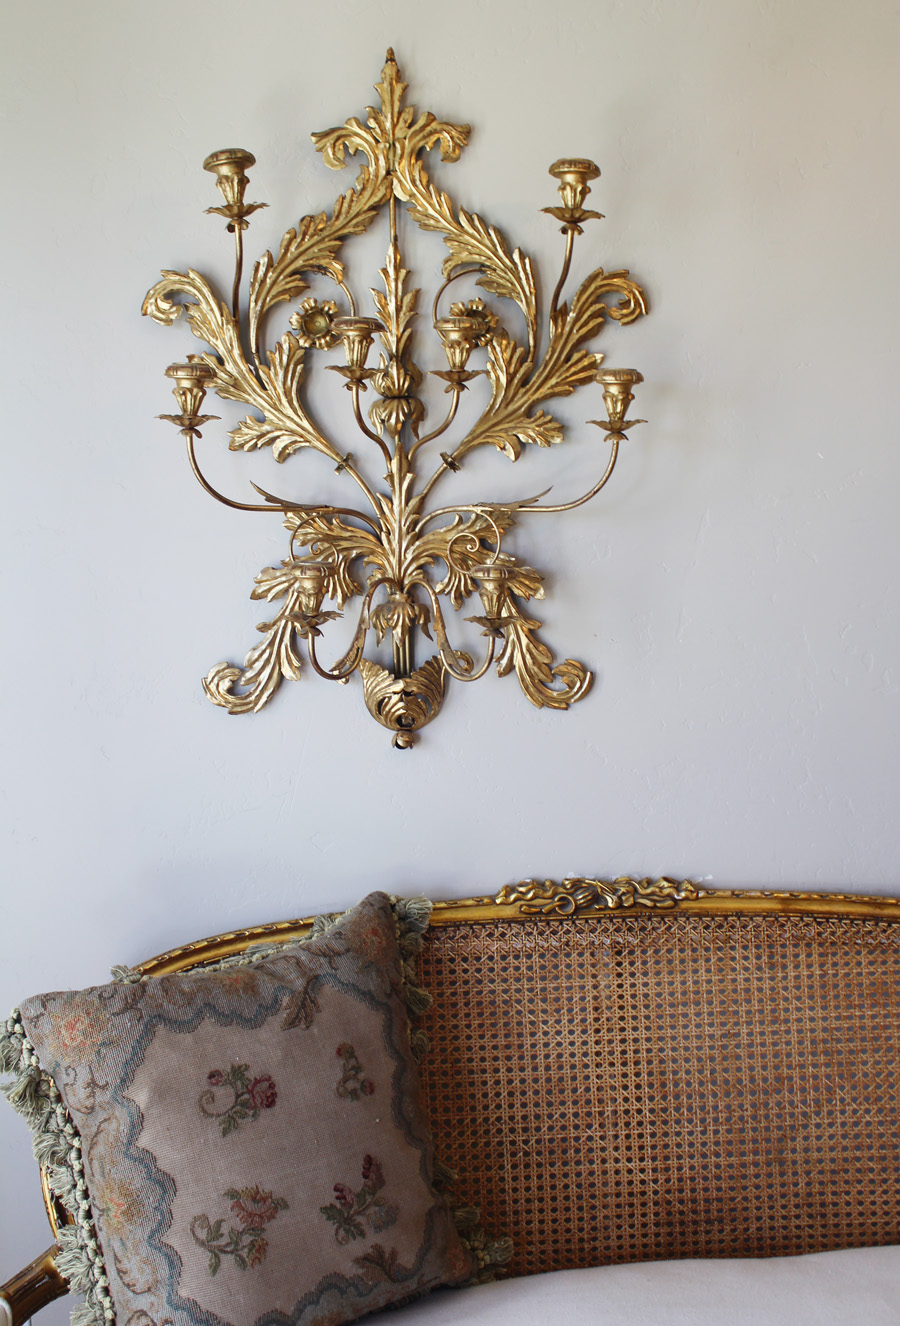 Antique Italian Tole Gilt Wall Sconce Candelabra